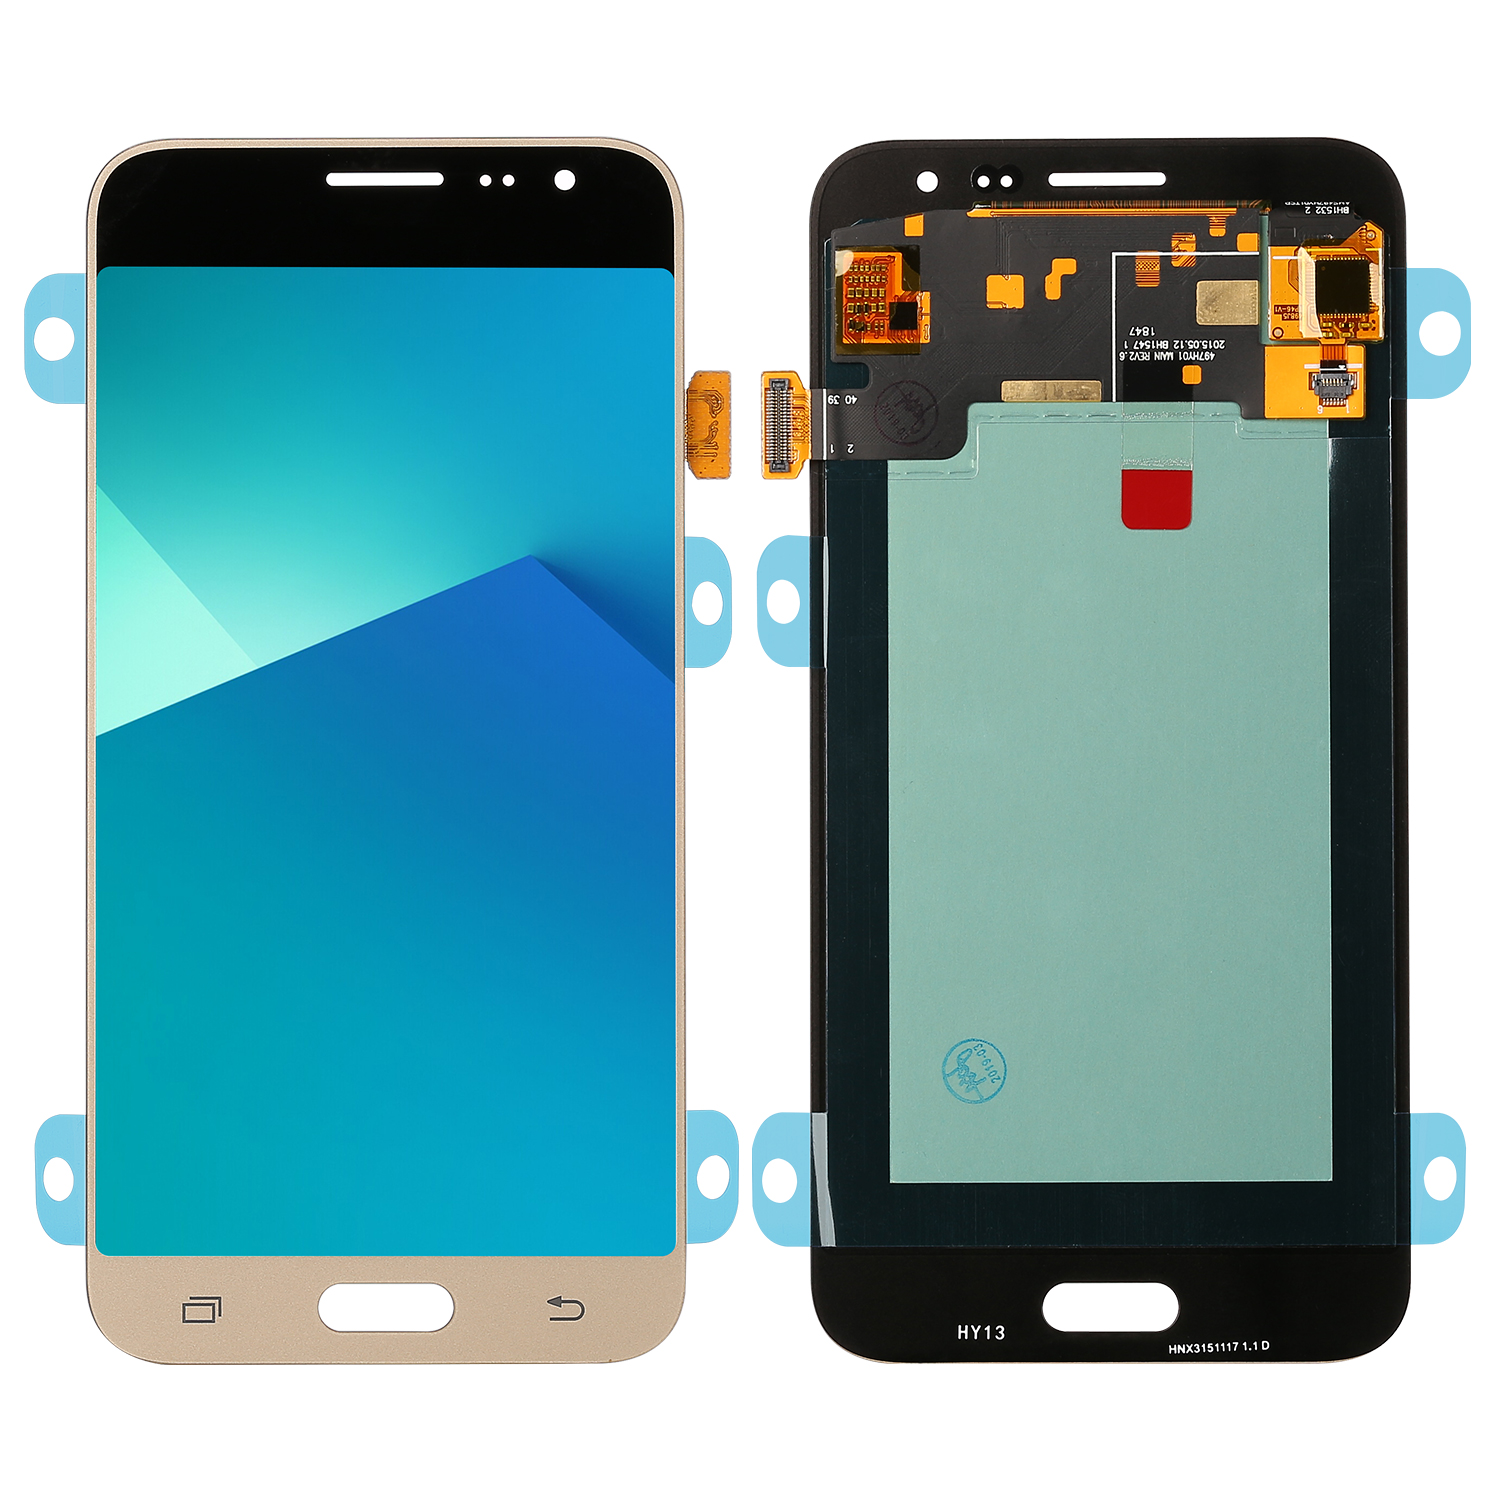 5.0'' <font><b>LCD</b></font> For Samsung Galaxy J3 2016 Display <font><b>J320</b></font> J320A J320F J320M Super <font><b>Amoled</b></font> Touch Screen Digitizer Assembly Parts image